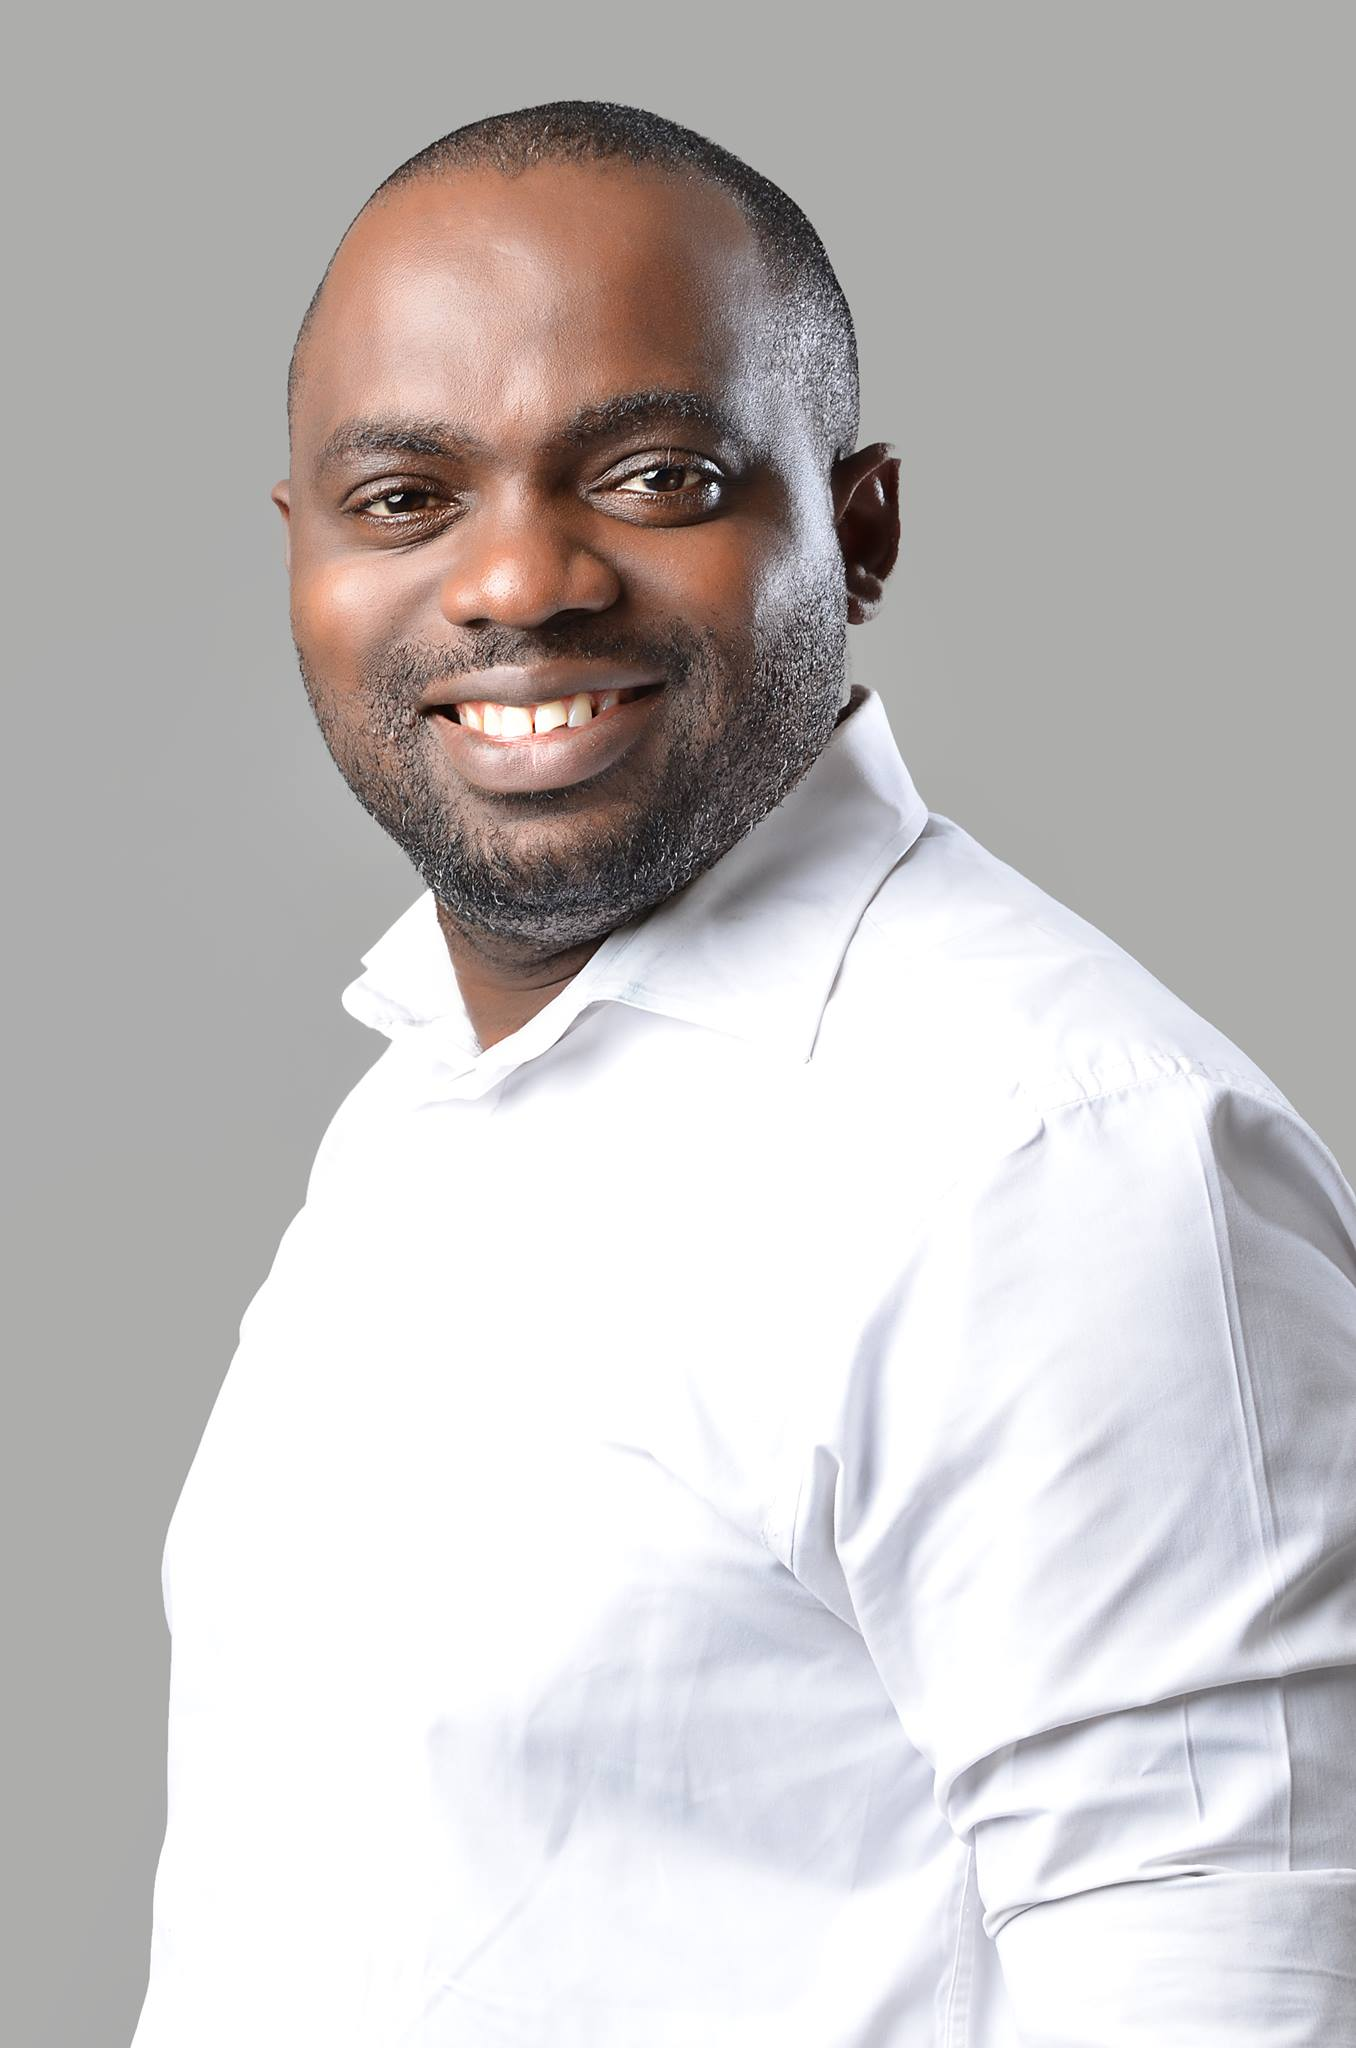 MEET EMEKA NOBIS : THE THOUGHT LEADER CREATING A NEW LEAGUE.